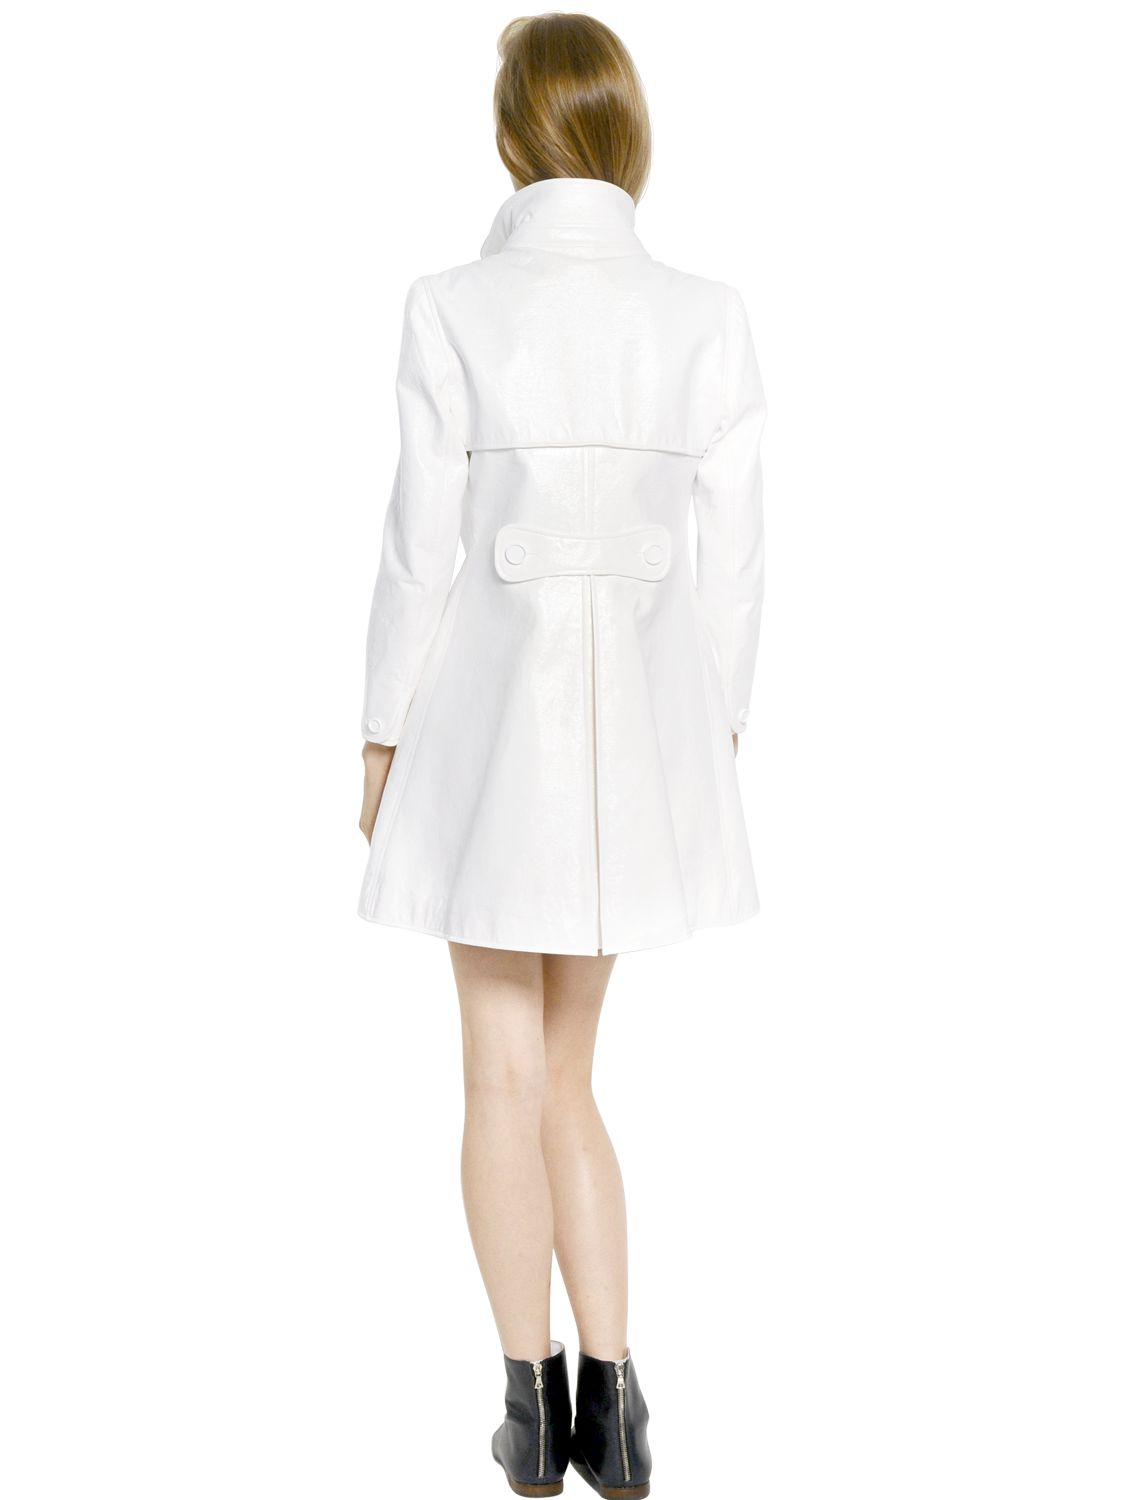 Louis Vuitton Made In France >> Lyst - Courreges Bonded Cotton Vinyl Trench Coat in White